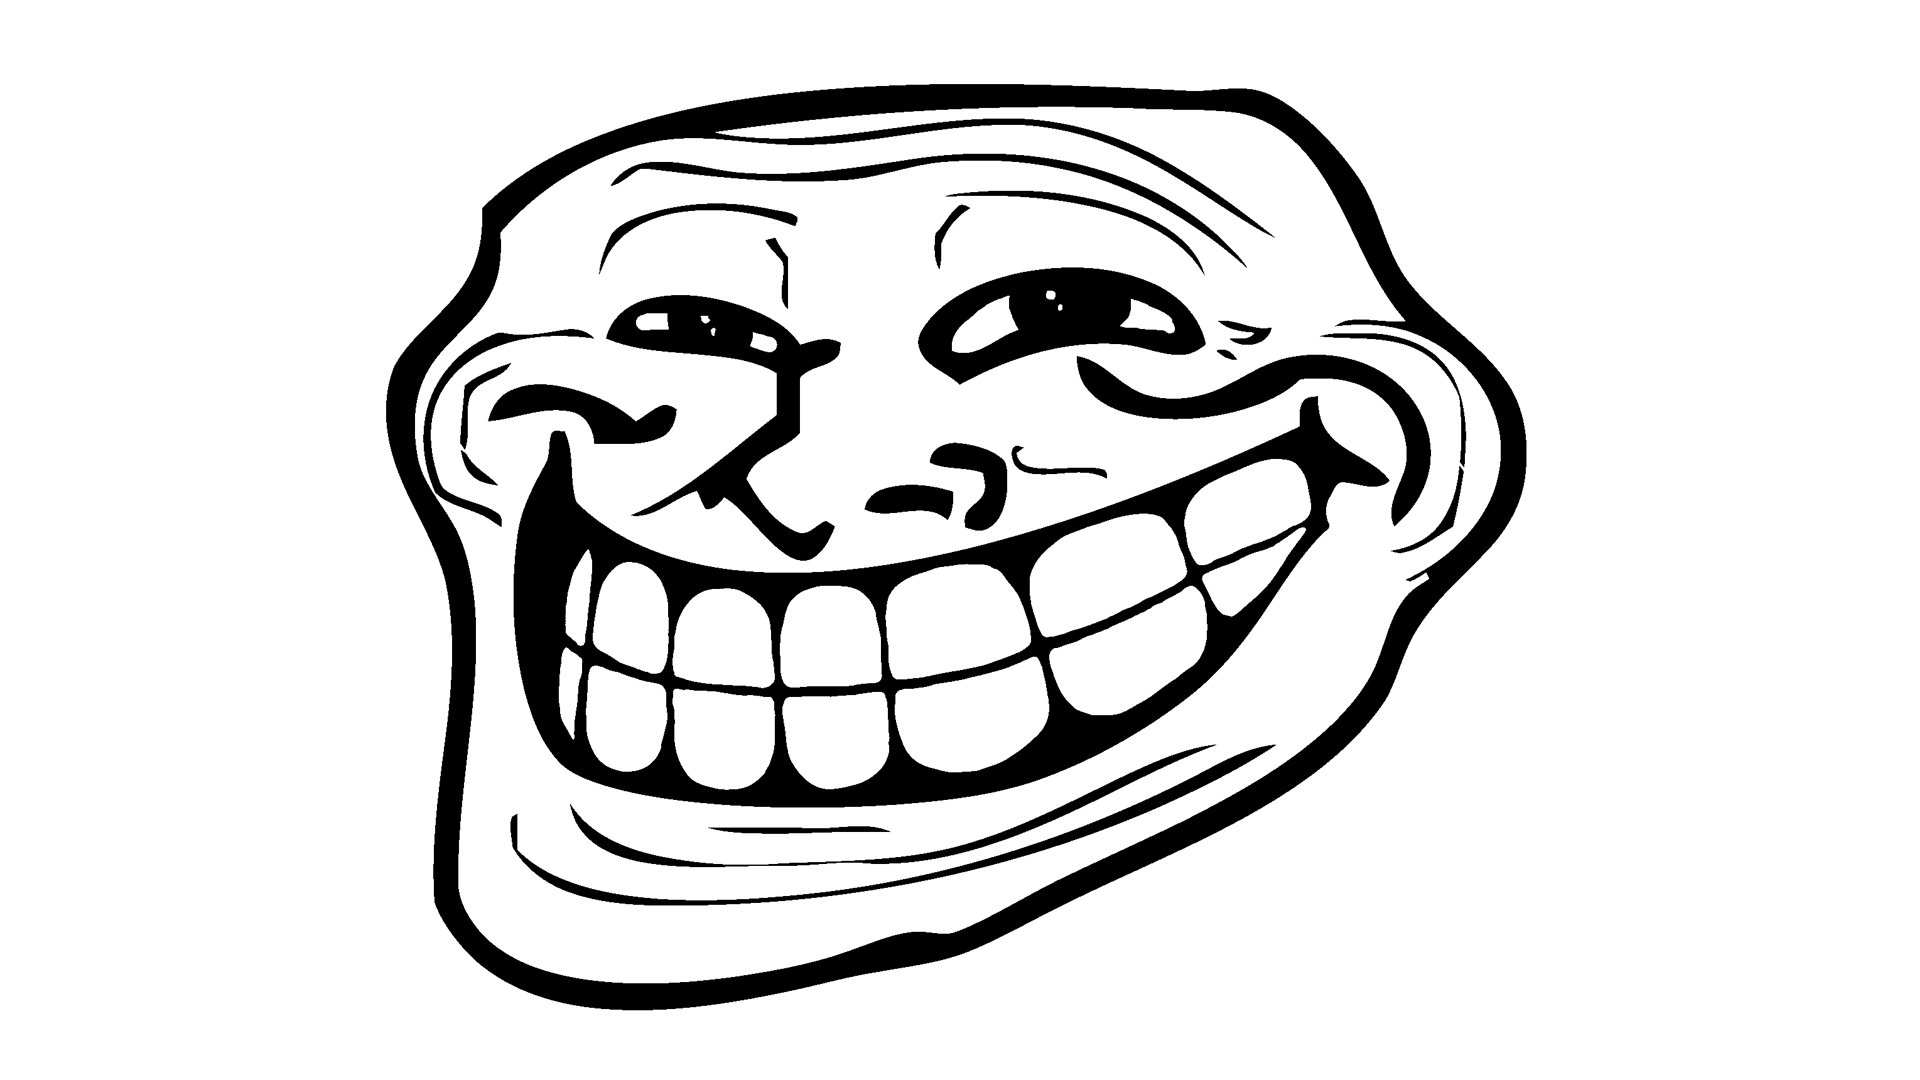 Problem Meme Troll Face Previous